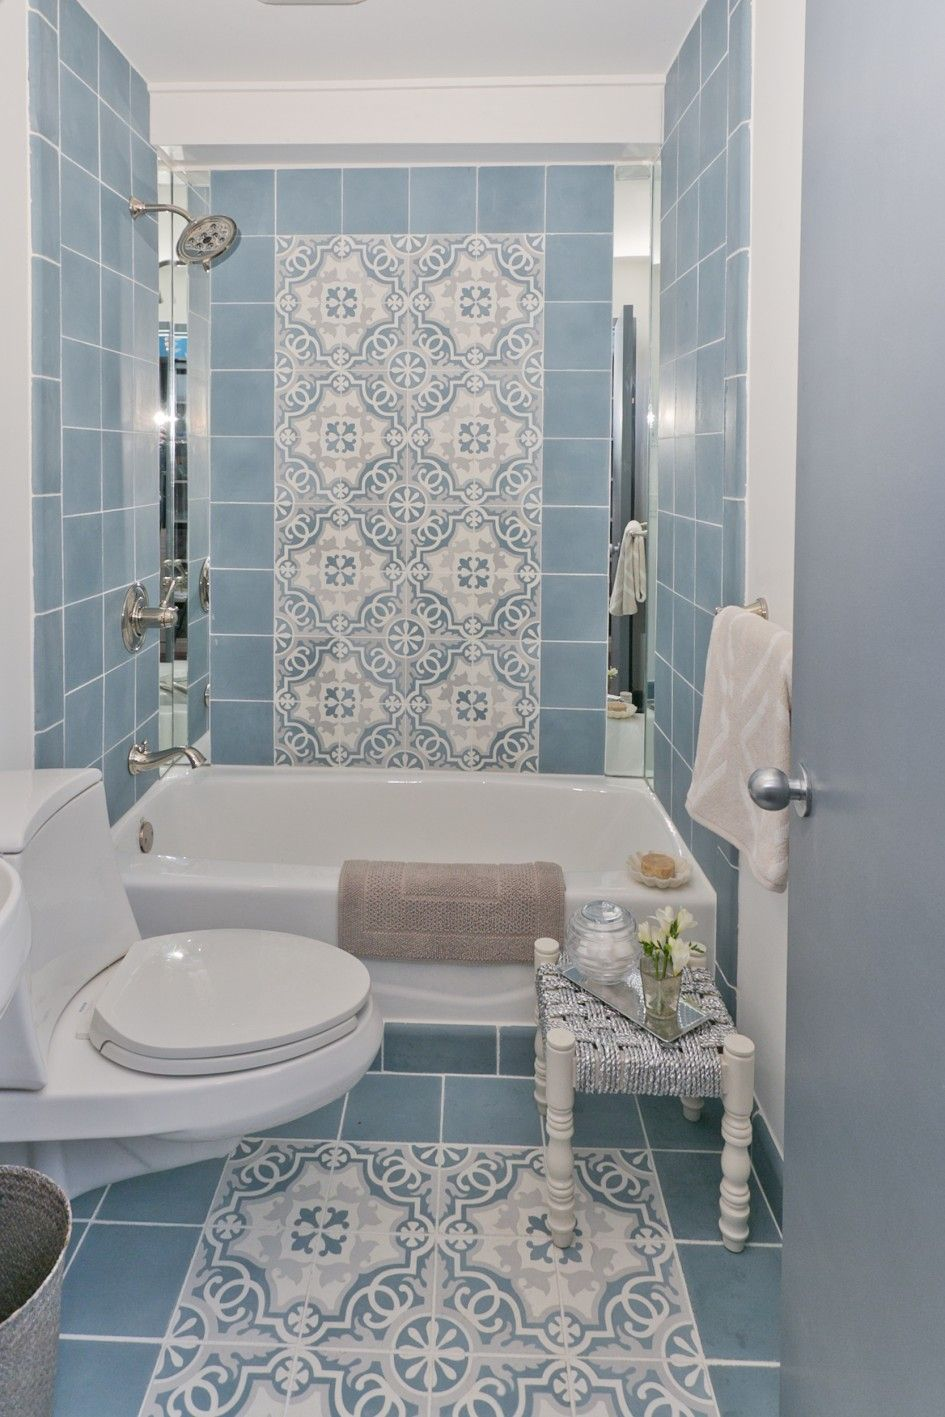 Bathroom Modern Blue Nuance Of The Vintage Bathrooms That Has Blue Tiles  Can Add The Beauty Inside The Modern House Design Ideas With Modern Lamp  Inside The ... Part 65